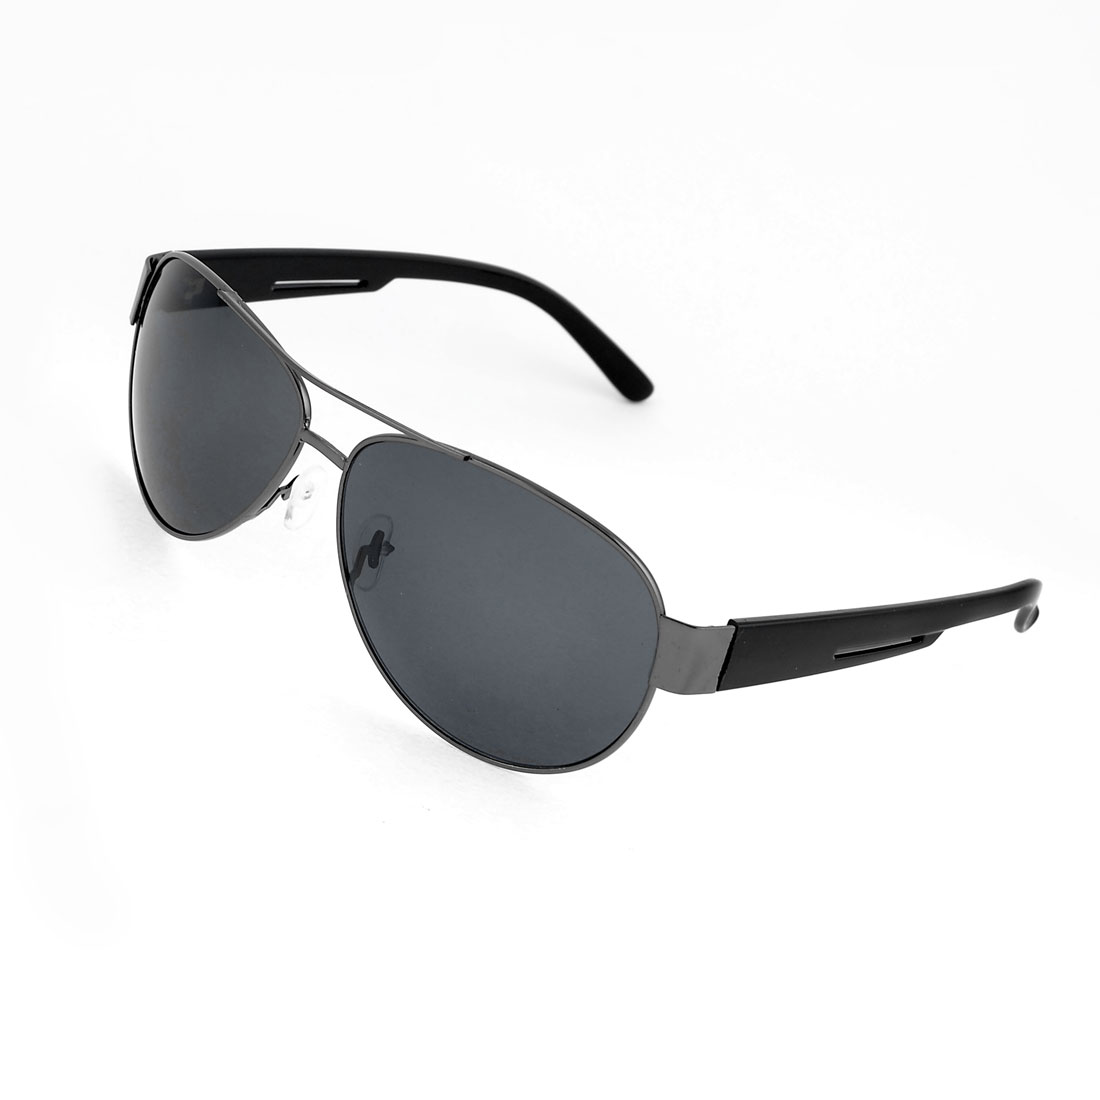 Black Plastic Arms Metal Full Rim Colored Lens Sunglasses for Men